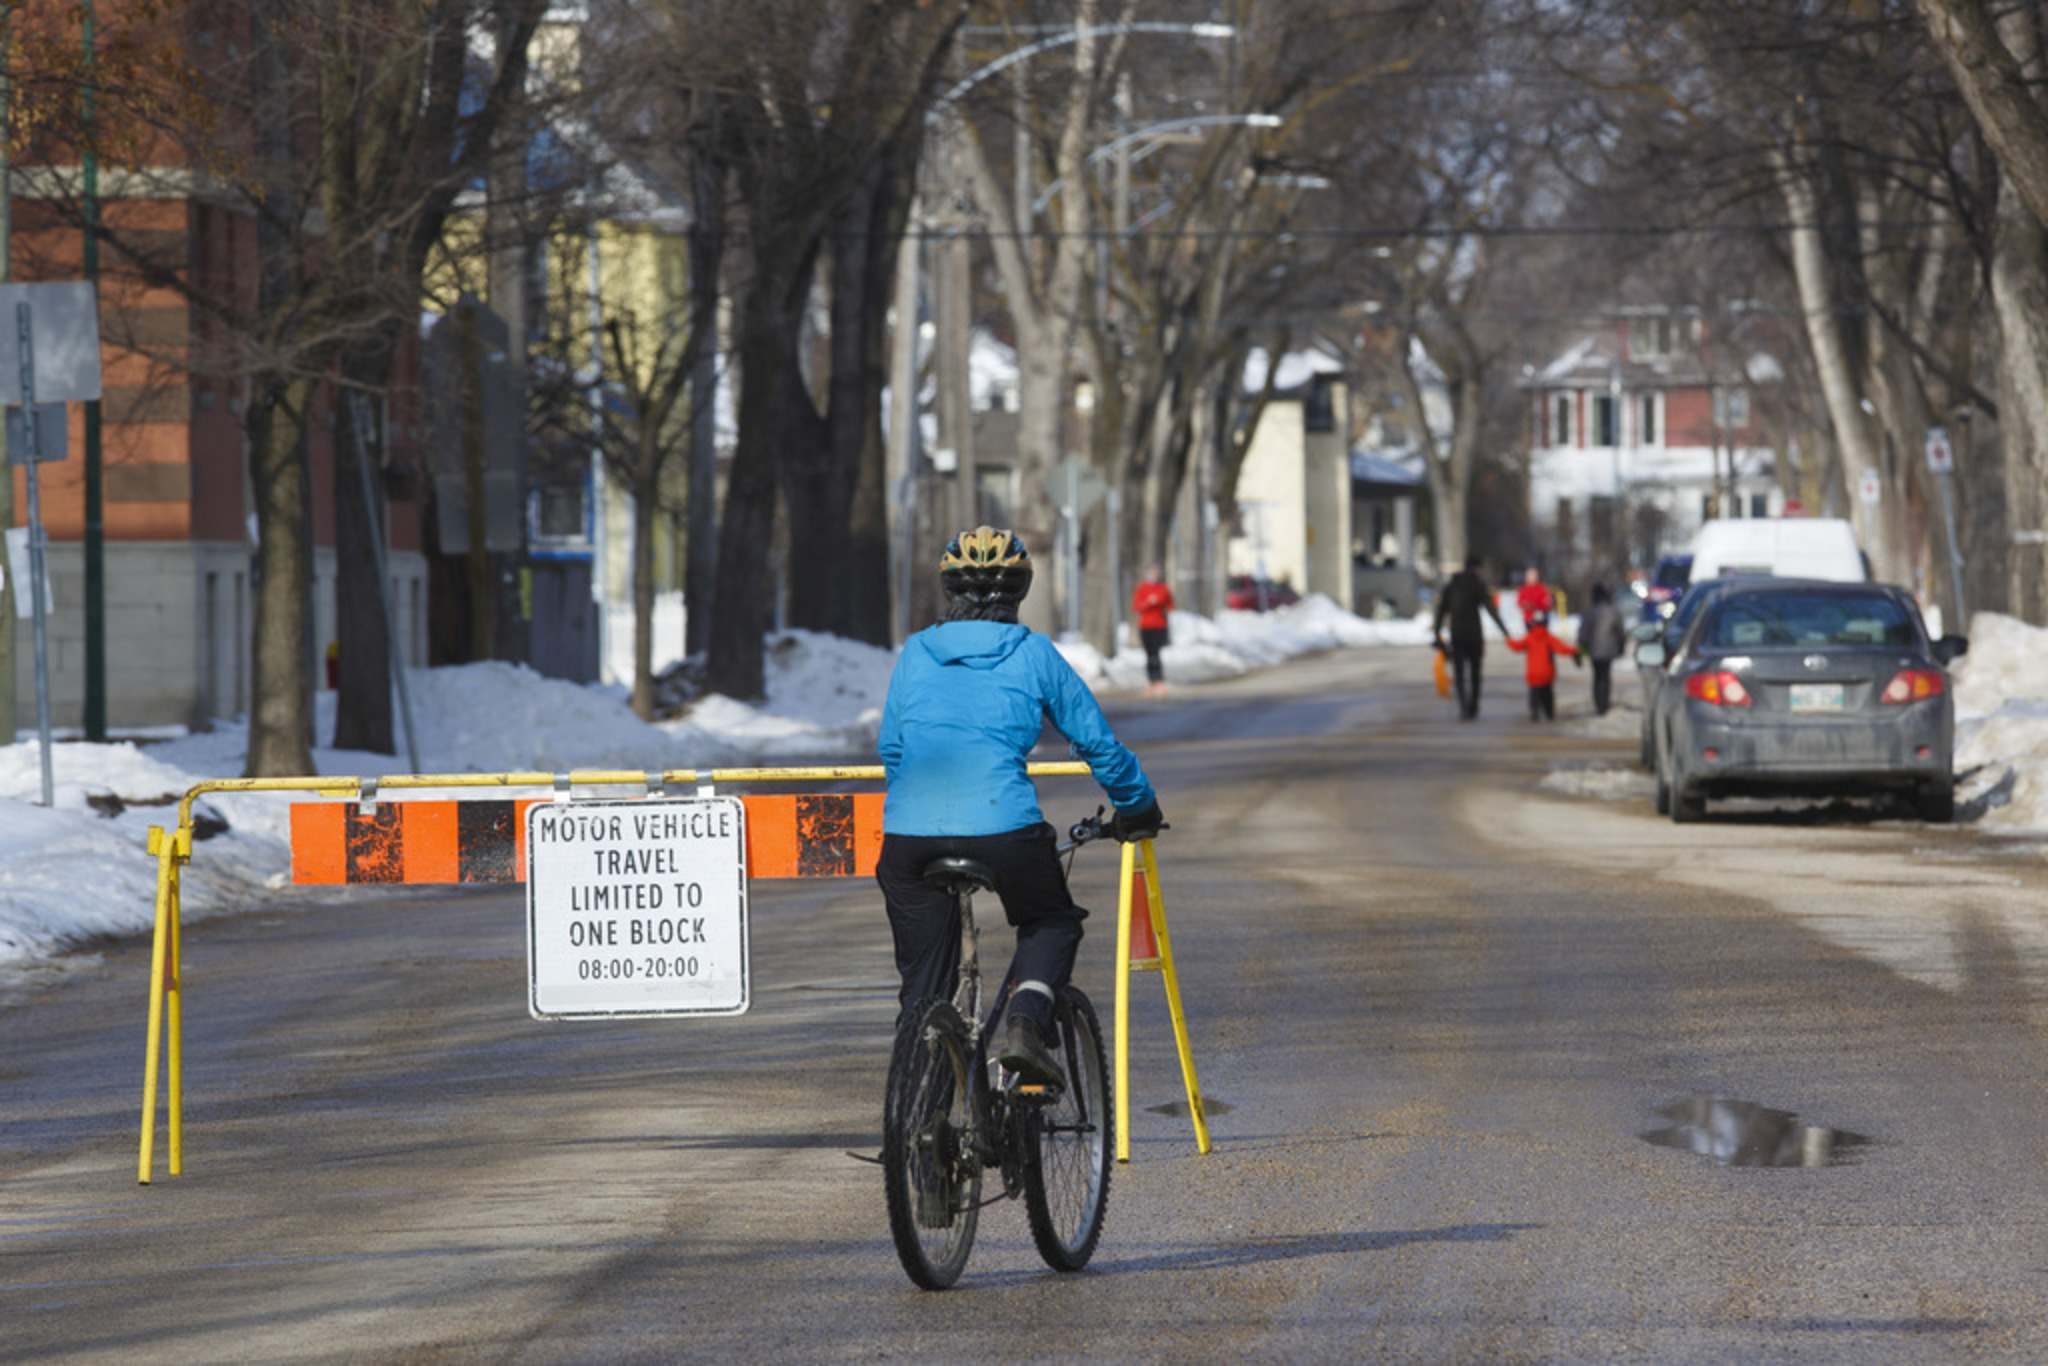 Wolseley Avenue is one of nine routes turned into pedestrian and cyclist corridors in April; between 8 a.m. and 8 p.m., cars are only allowed to travel one block before they must divert onto other streets.City council is now considering extending these restrictions into September. (Mike Deal / Winnipeg Free Press files)</p>